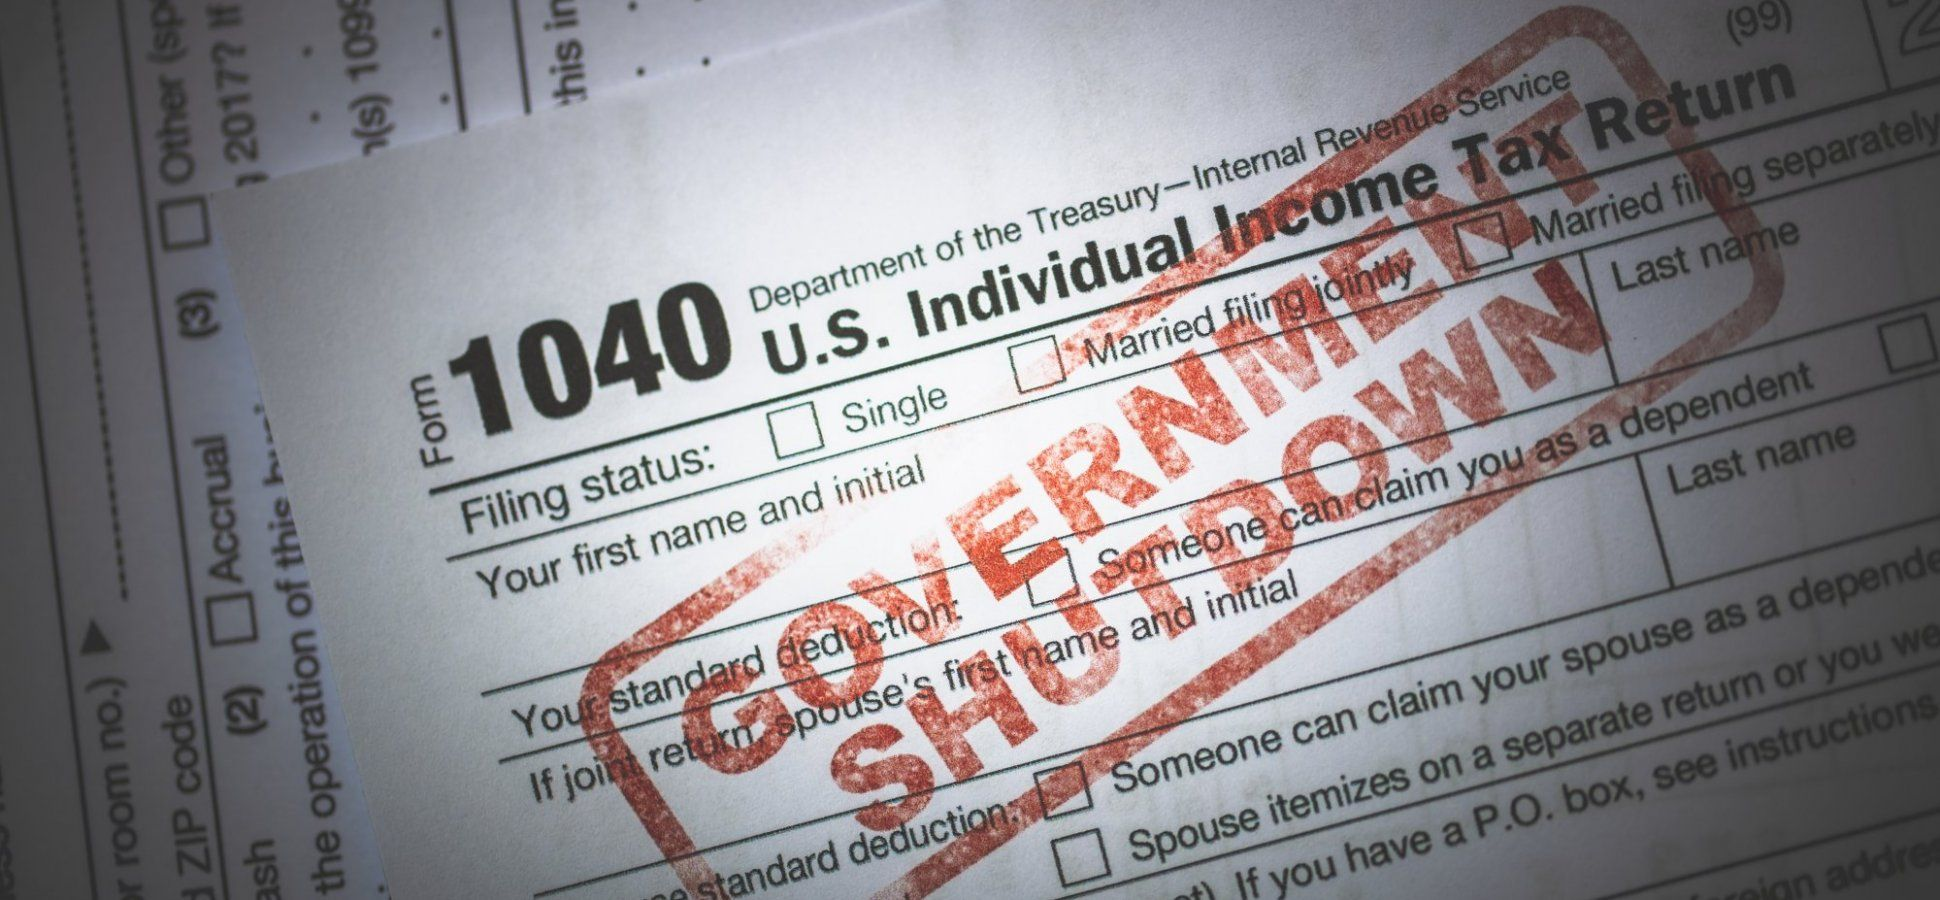 The government shutdown will not delay tax refunds. Efile